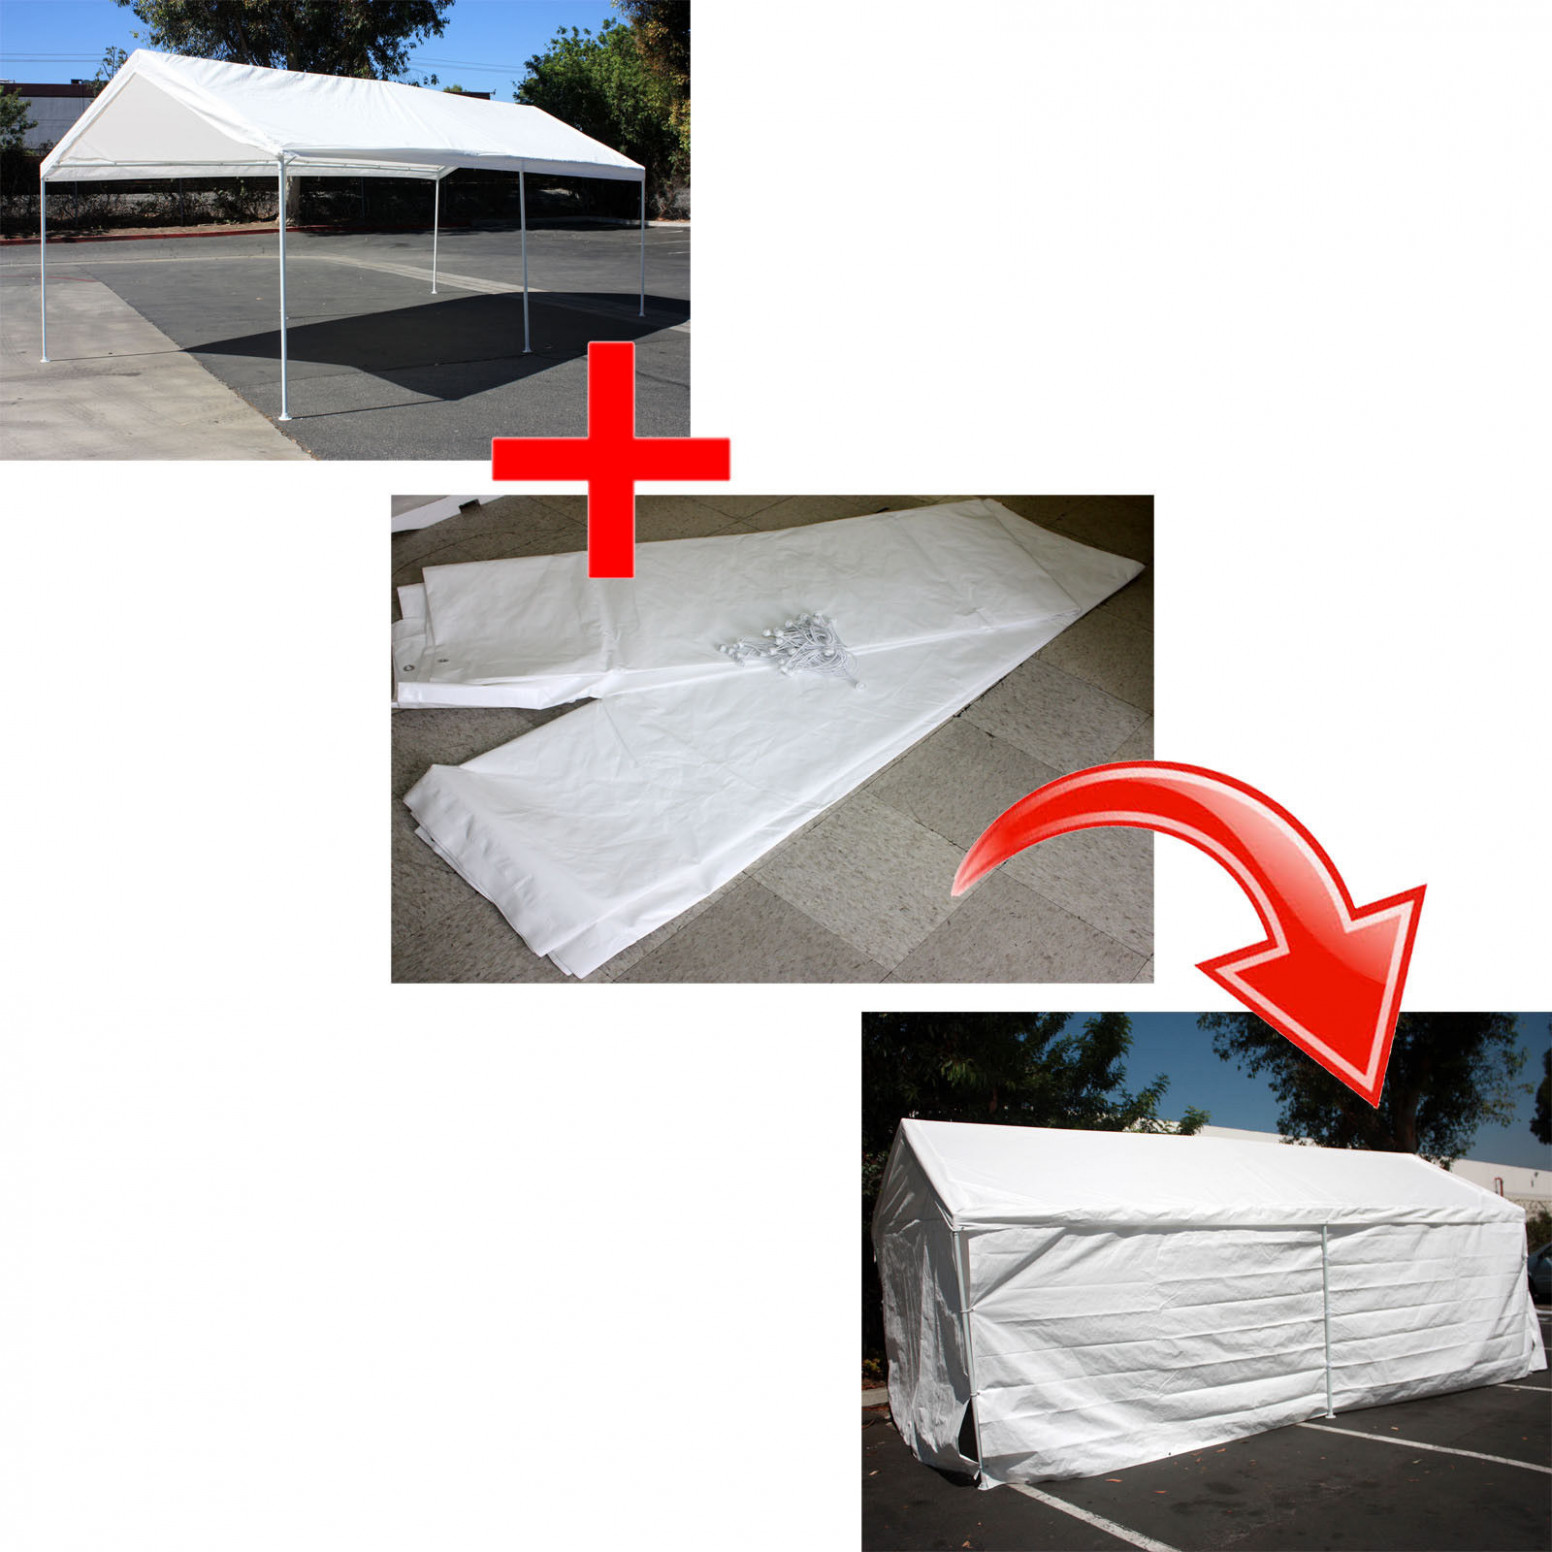 Add On Canopy Garage Side Wall Kit 12 12'x12' Tent Parking Carport Party Shelter Carport Parking Kits